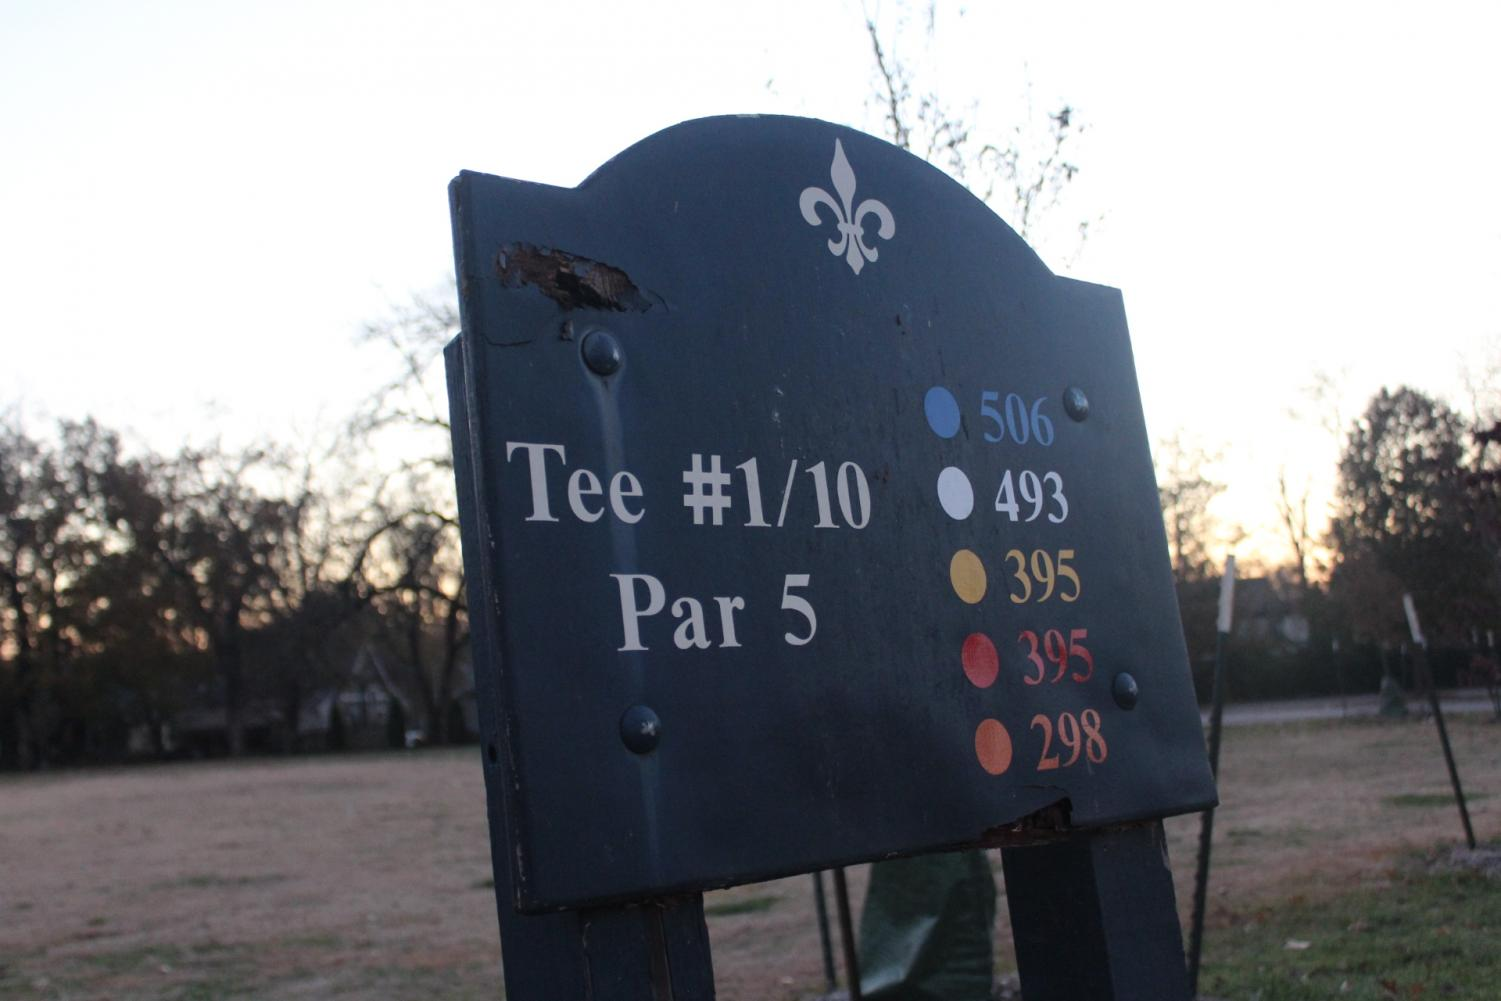 Tee #1 on Crescent Hill Golf Course's Par 5 course. Crescent Hill Golf Course was one of the six courses Mayor Fischer announced he was considering closing in April of 2019. Photo by Norah Wulkopf